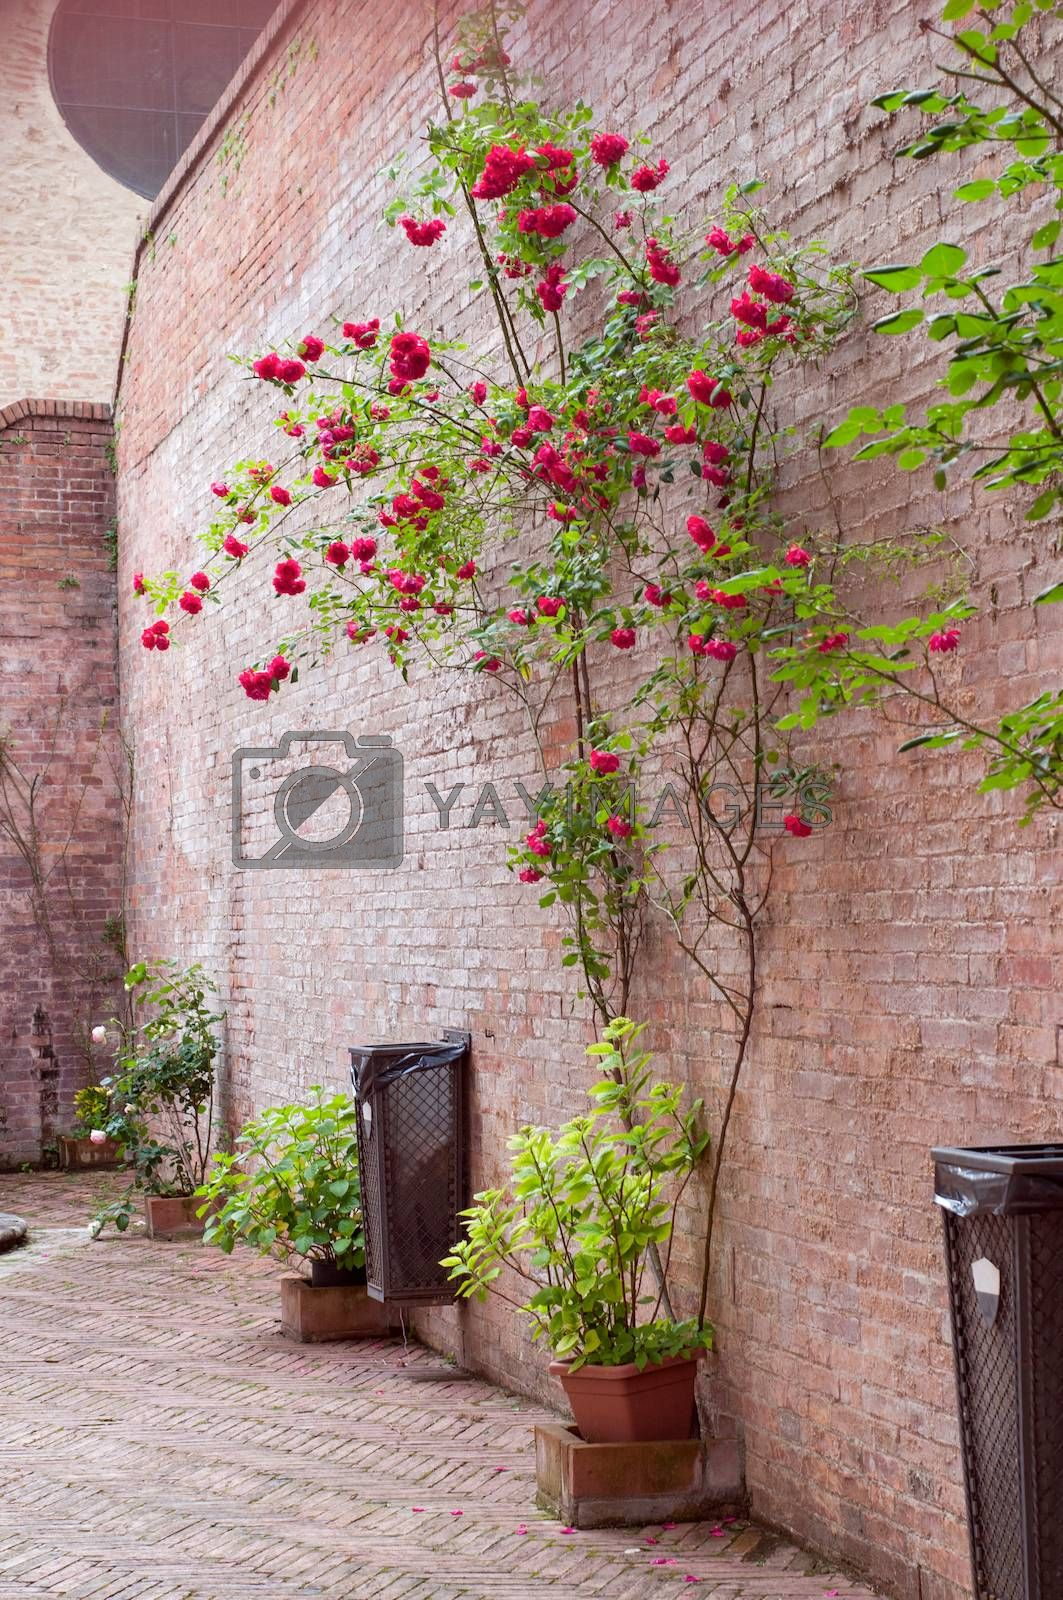 Rose bushes trained up a old stone wall